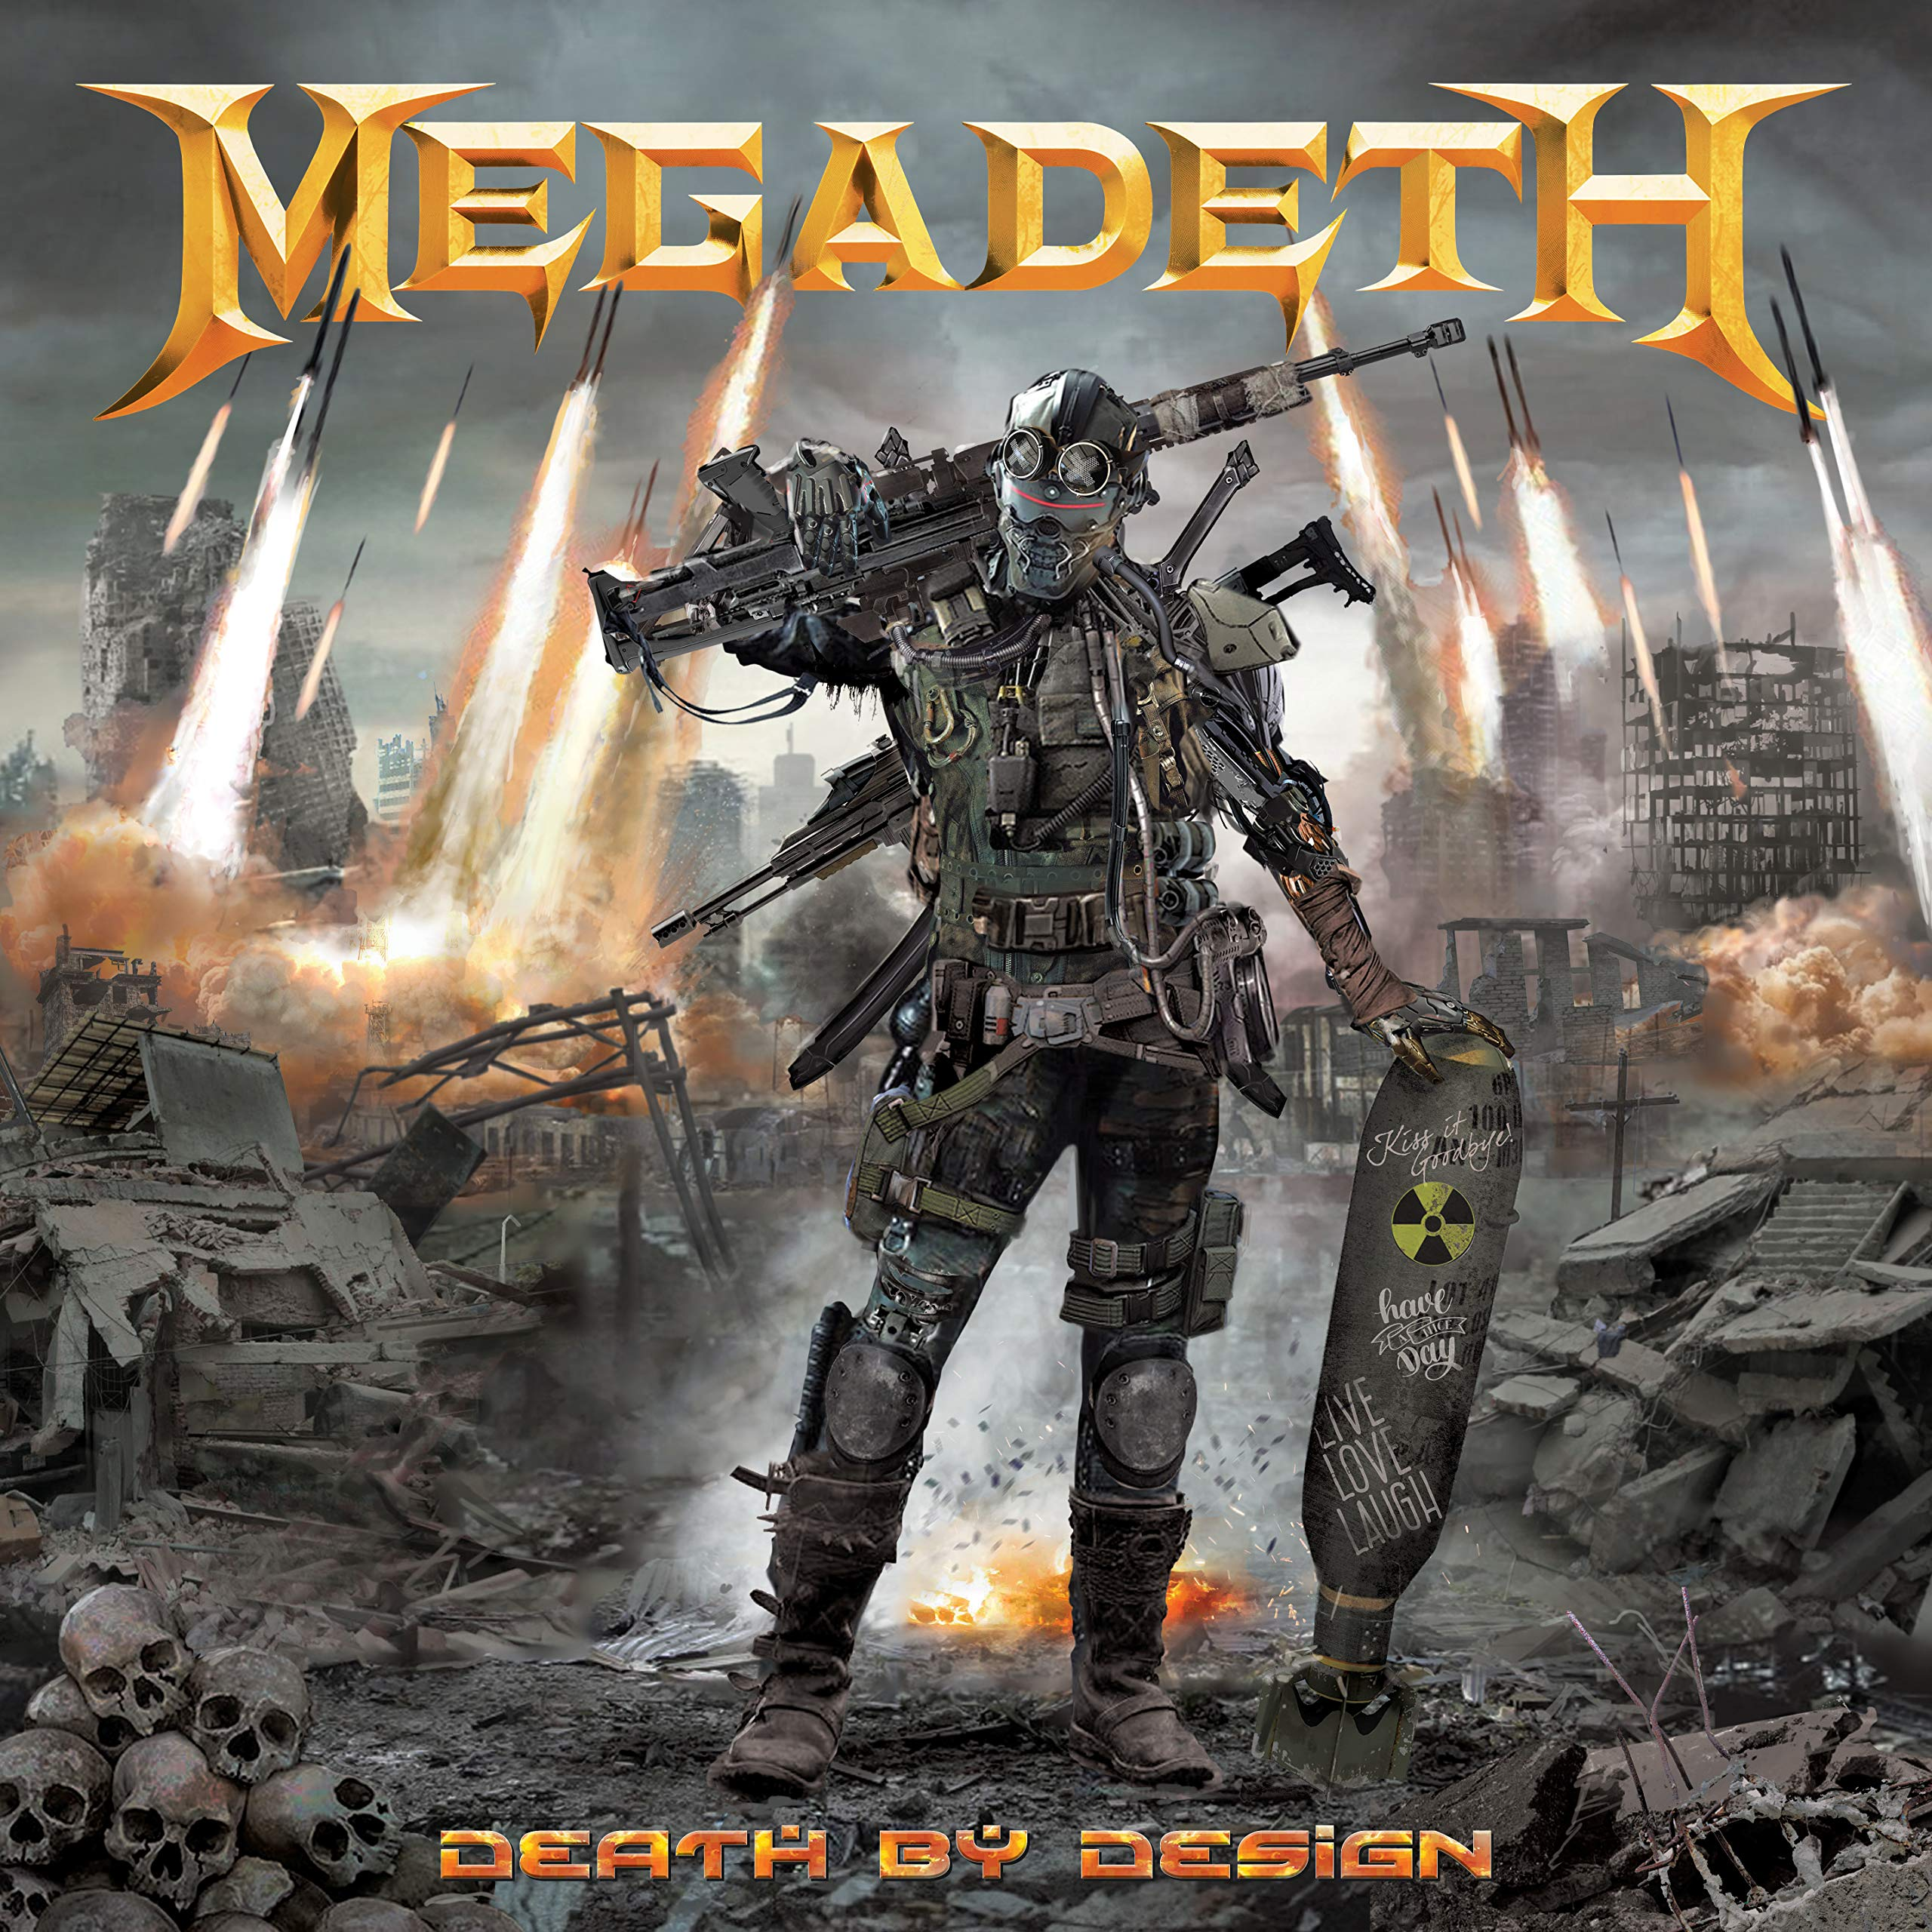 Megadeth Death by Design Hardcover (Megadeth Omnibus) by Heavy Metal Magazine